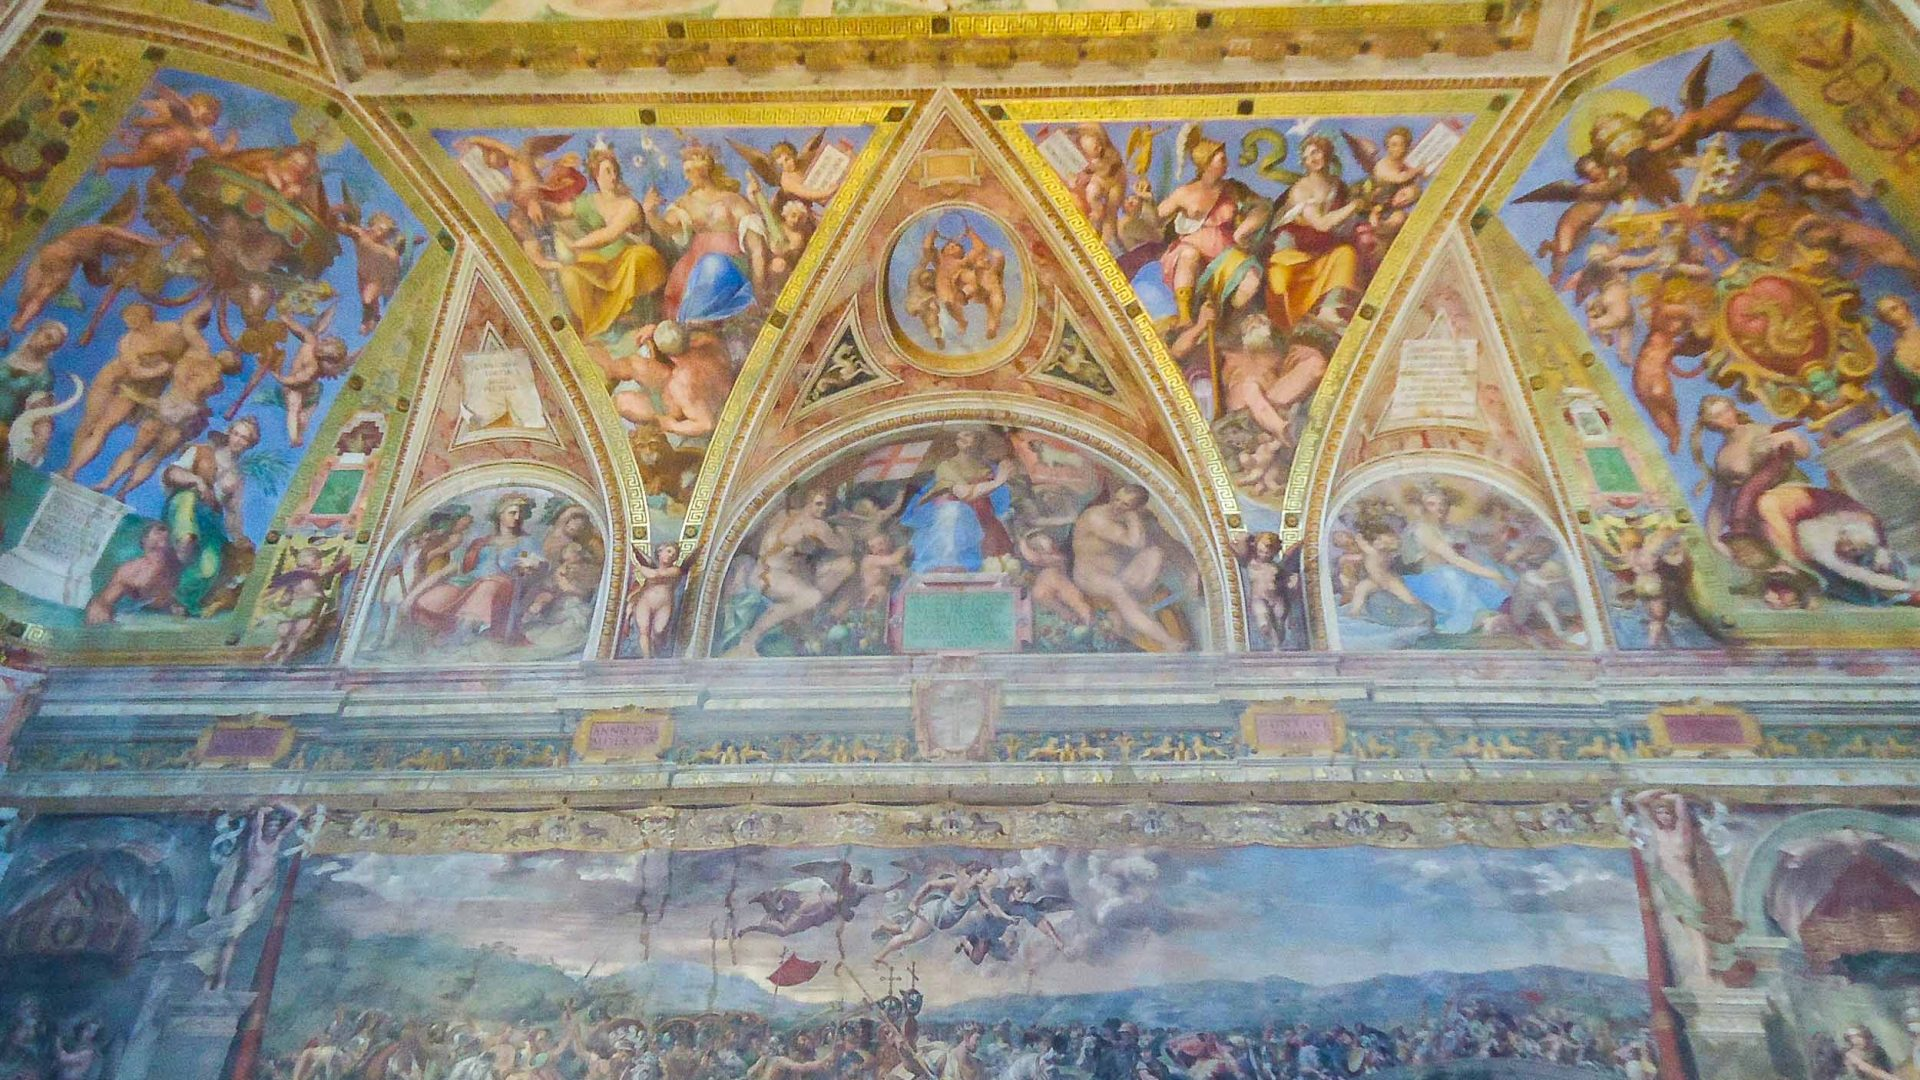 Frescos in the Raphael Rooms of the Vatican museum.